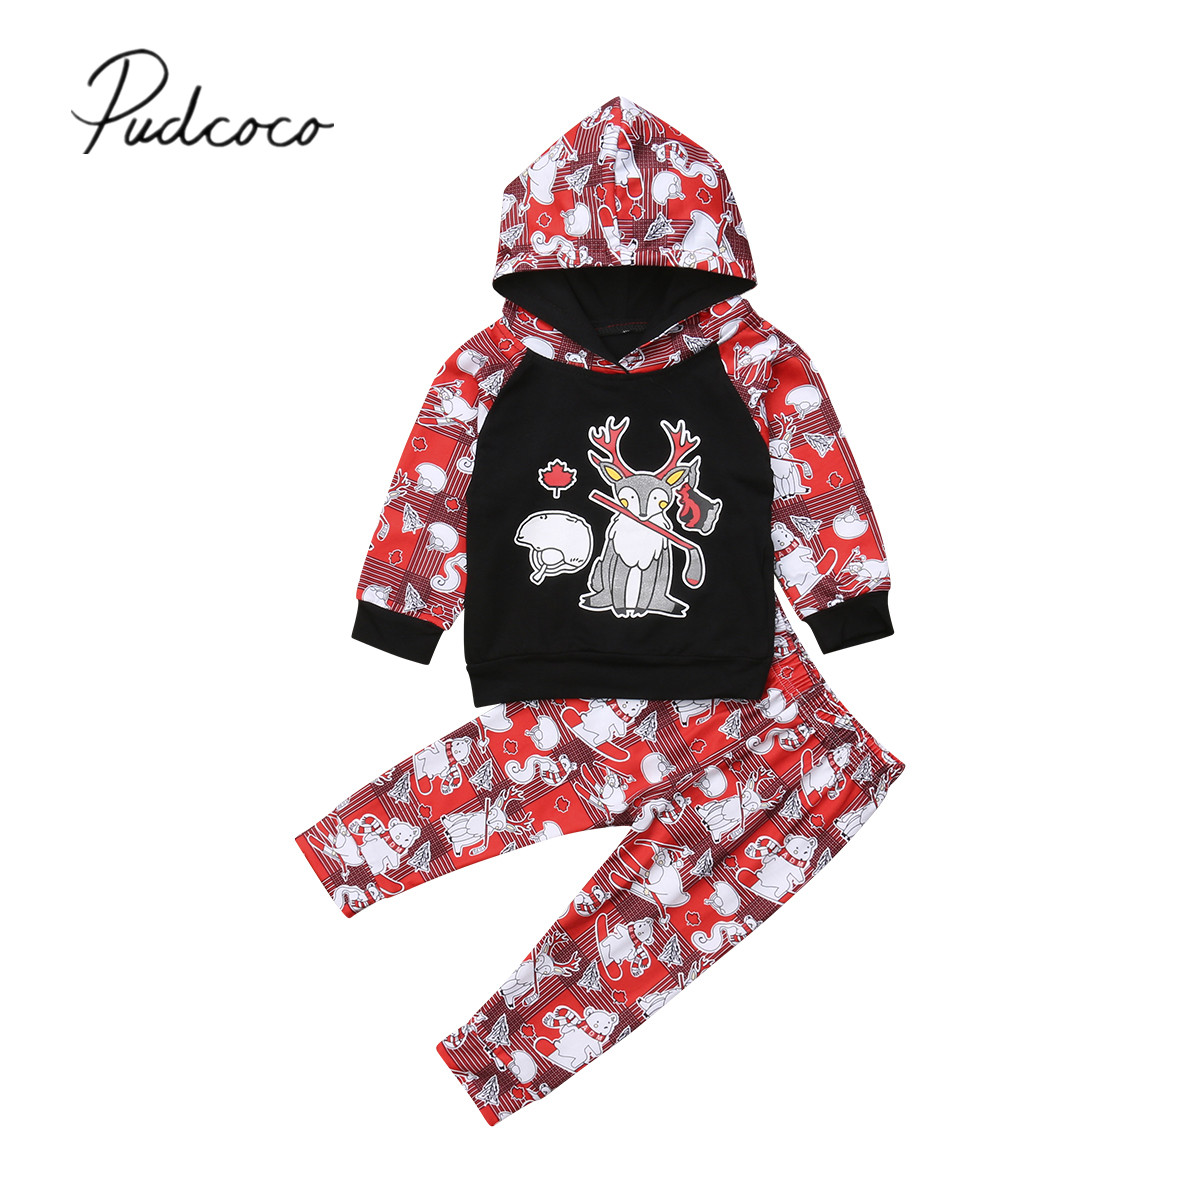 2PCS Toddler Baby Boy Christmas Clothes Long Sleeve Hoodie Top+Pants Outfits Set